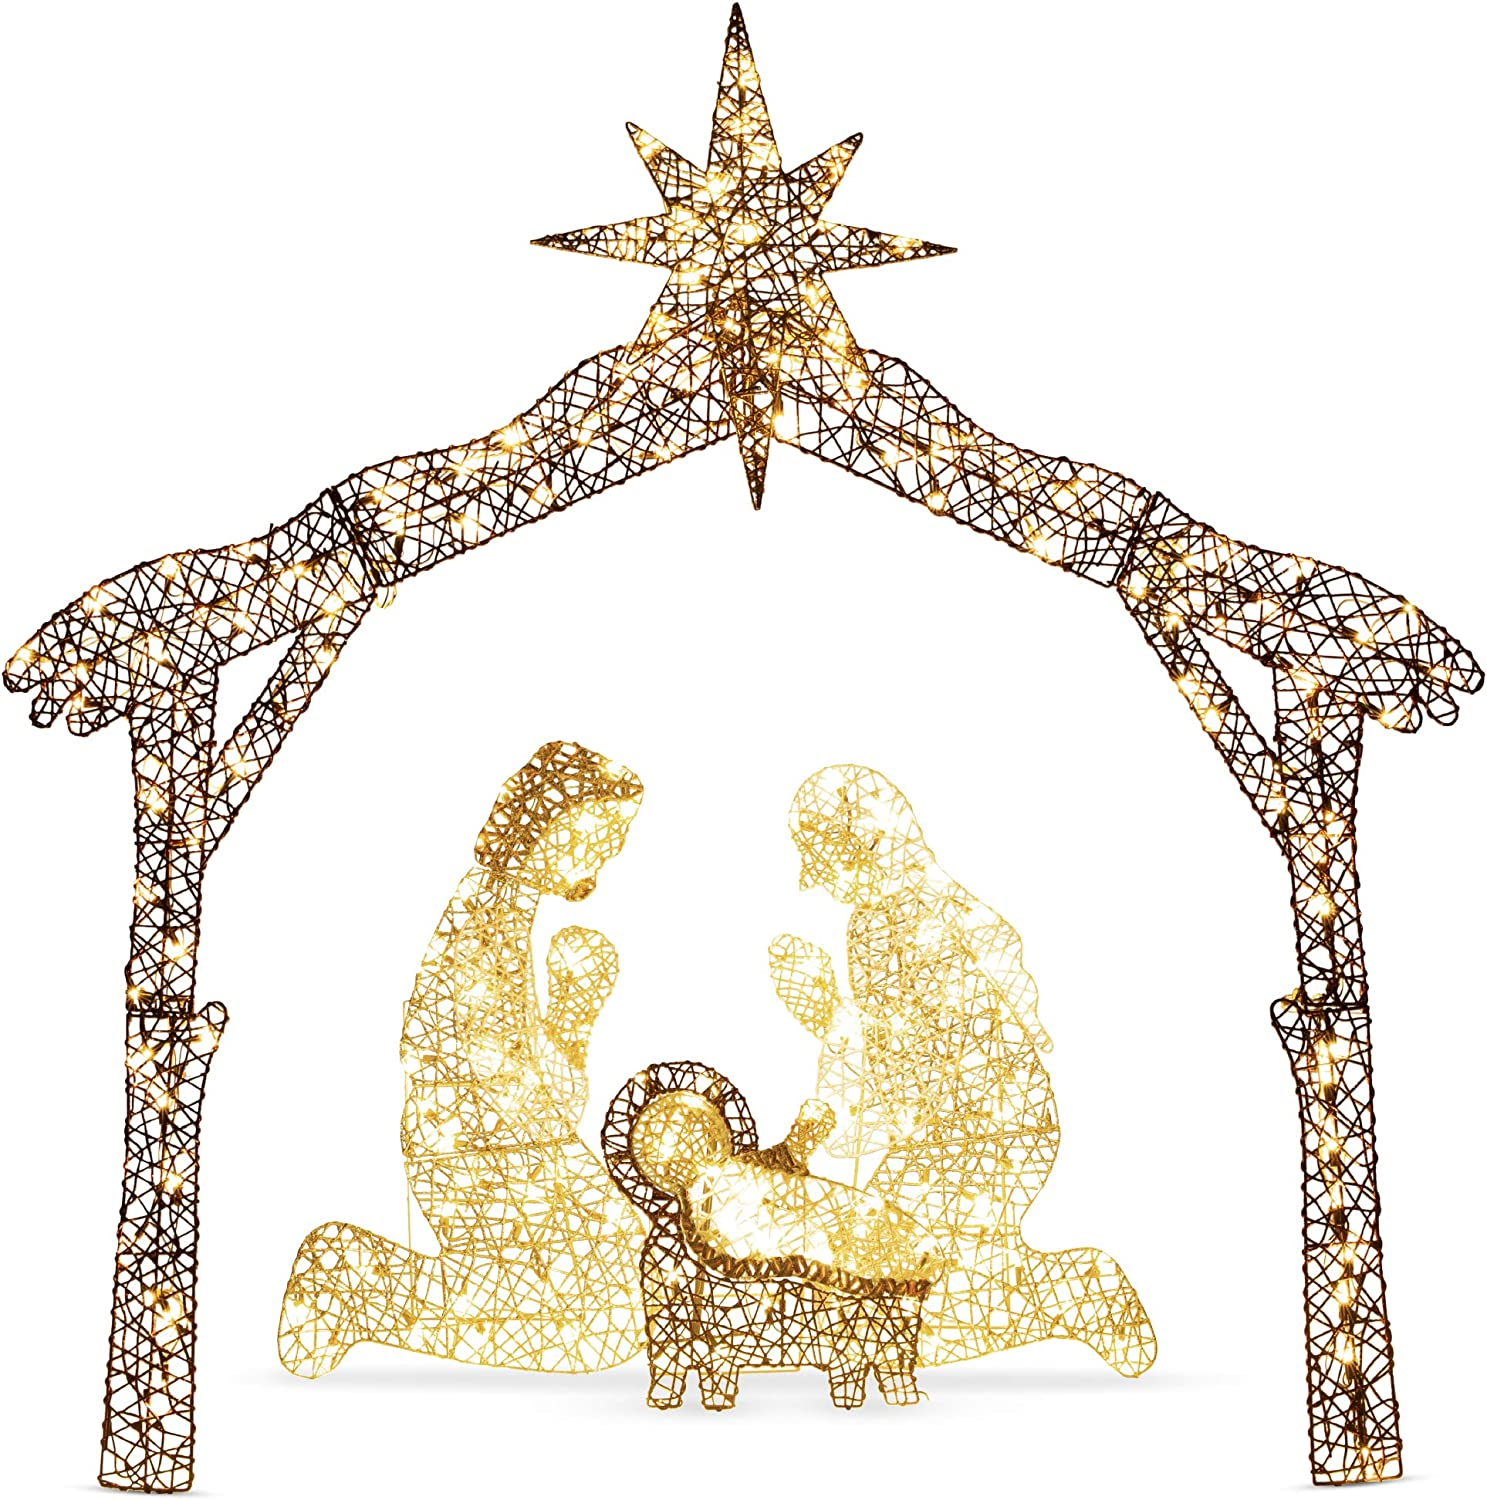 Best Choice Products 6ft Lighted Christmas Holy Family Nativity Scene Outdoor Yard Decoration with 190 LED Lights, Stakes, Zip Ties